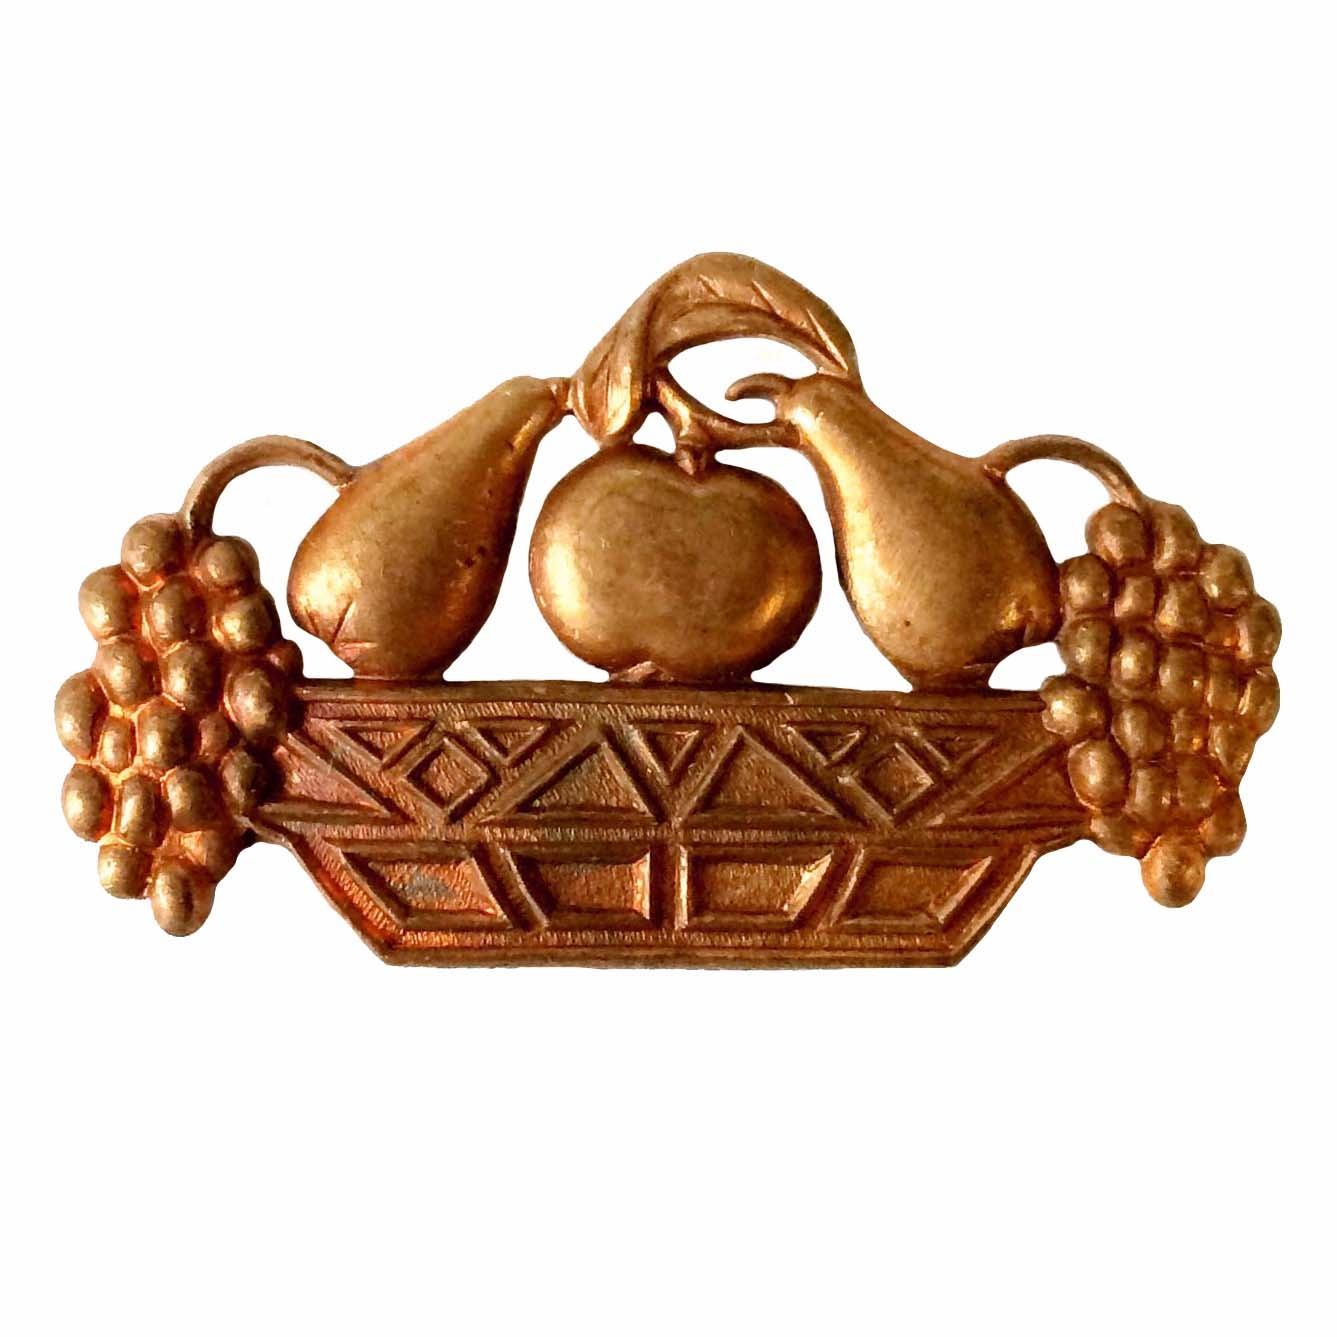 vintage fruit basket, art deco basket, 08777, B'sue Boutiques, nickel free jewelry supplies, vintage jewelry supplies, patina brass, gingerbread brass, brass jewelry parts